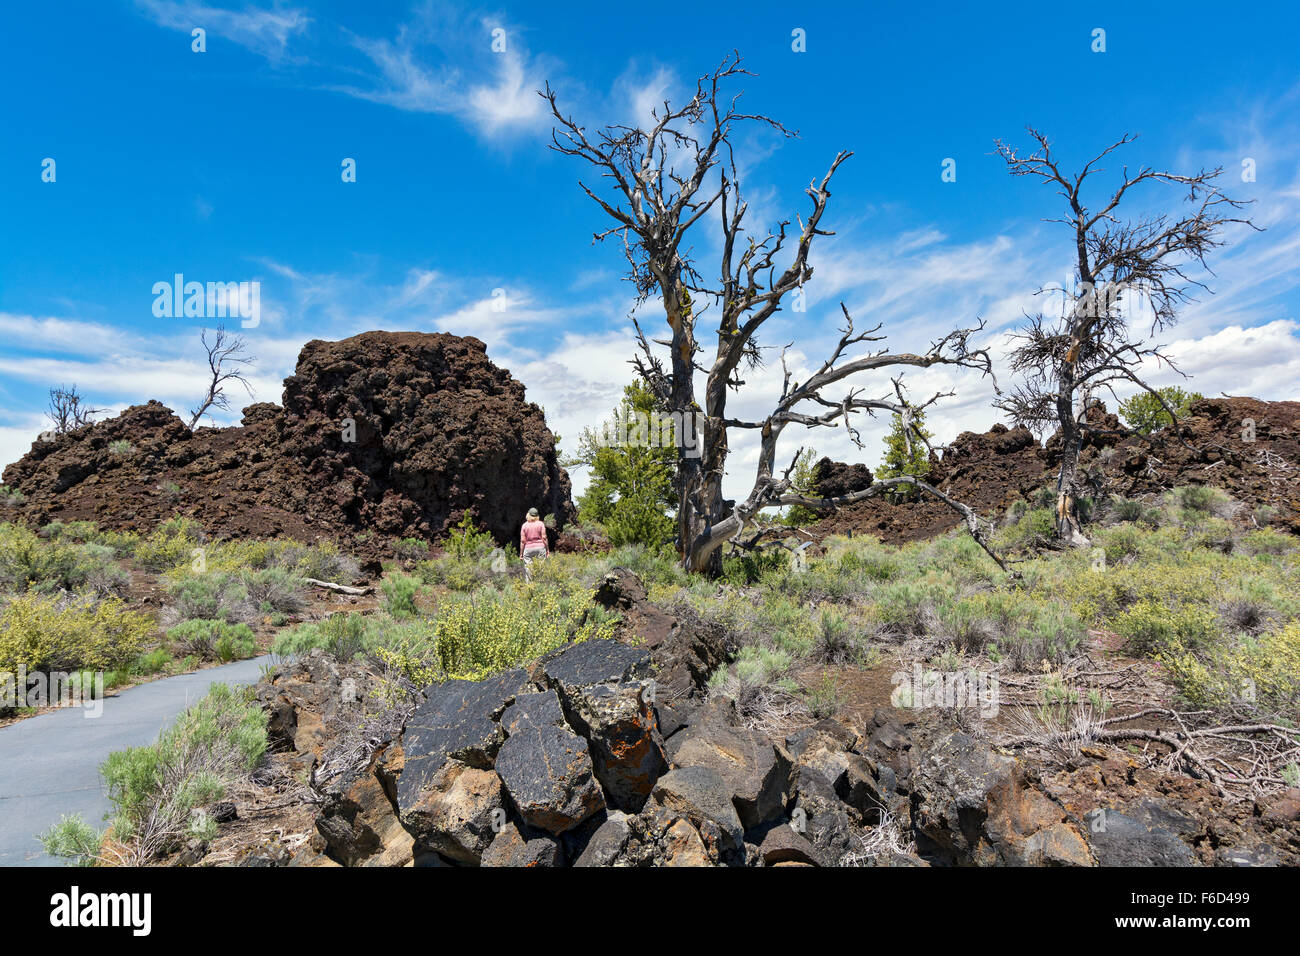 Idaho, Craters of the Moon National Monument and Preserve, Devil's Orchard Trail through lava field - Stock Image